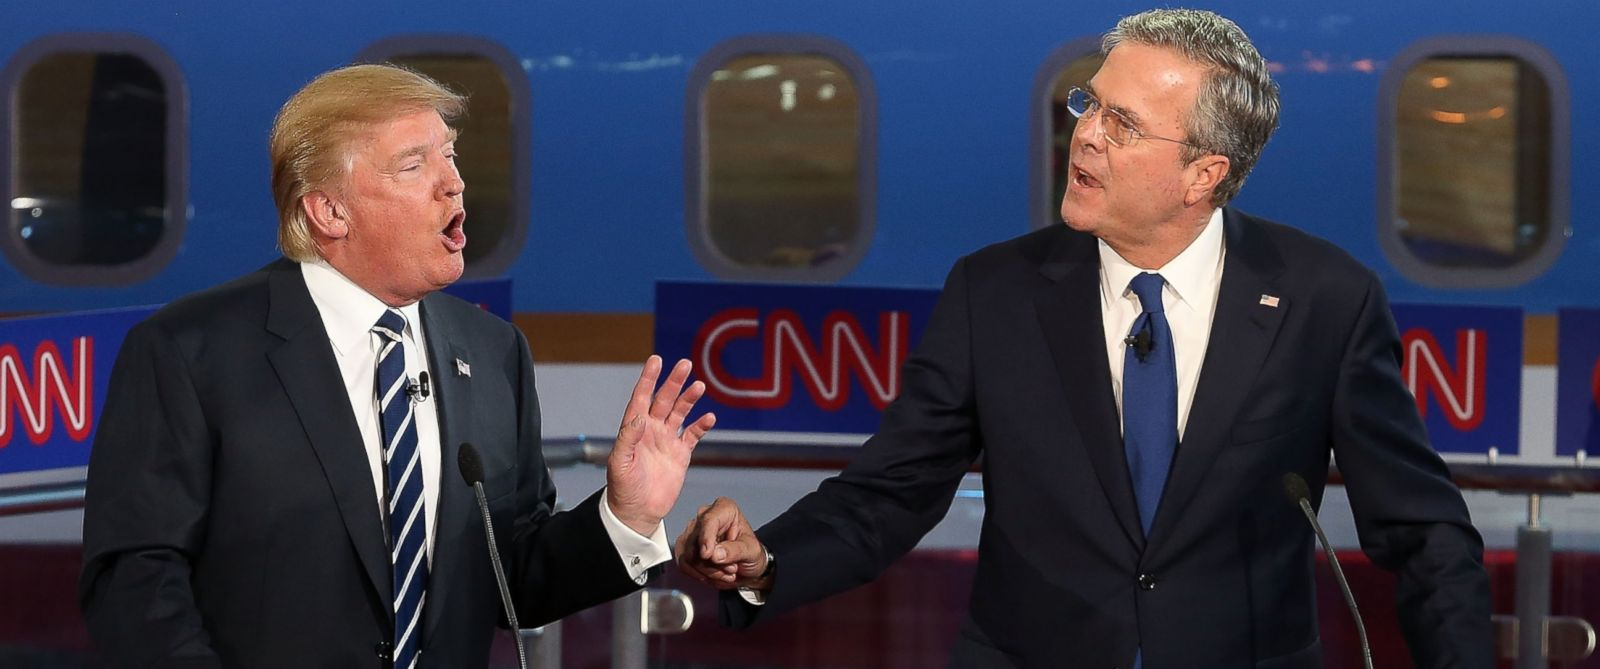 PHOTO: Donald Trump, left, and Jeb Bush, right, argue during the presidential debates at the Reagan Library on Sept. 16, 2015 in Simi Valley, Calif.